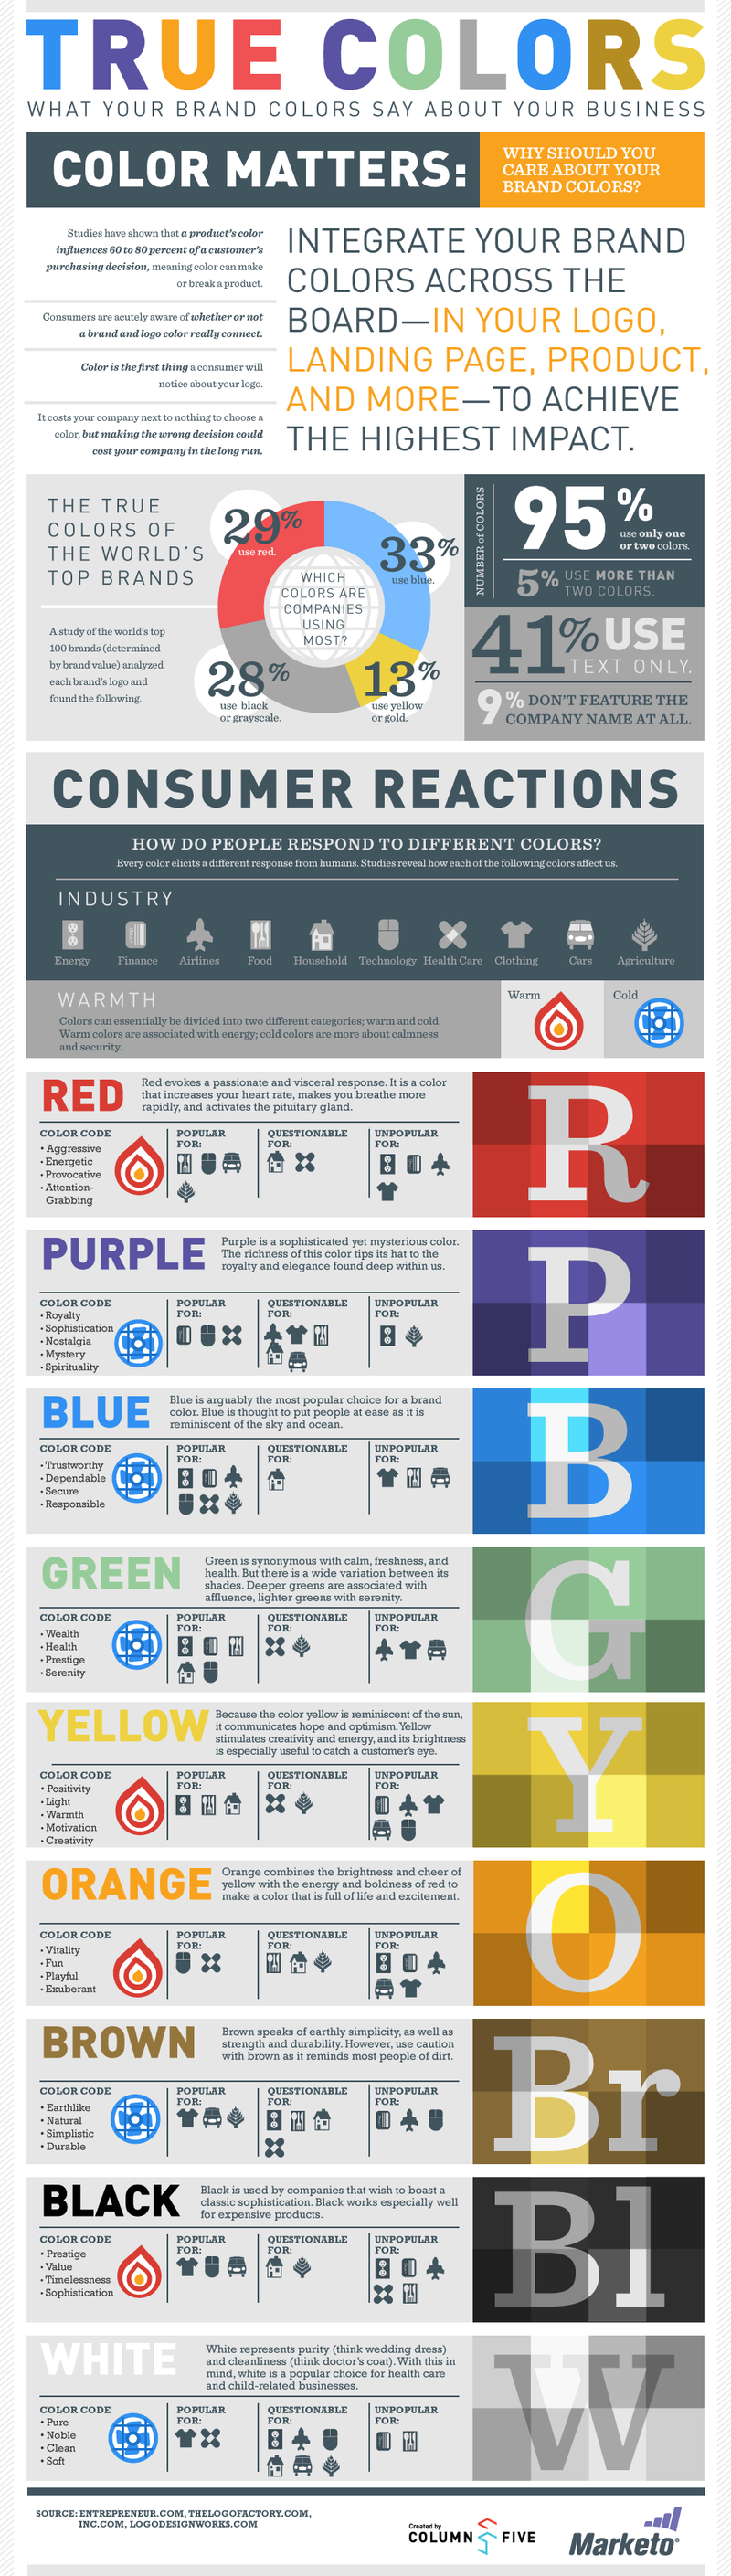 What Do Your Brand Colors Say About Your Business? #infographic